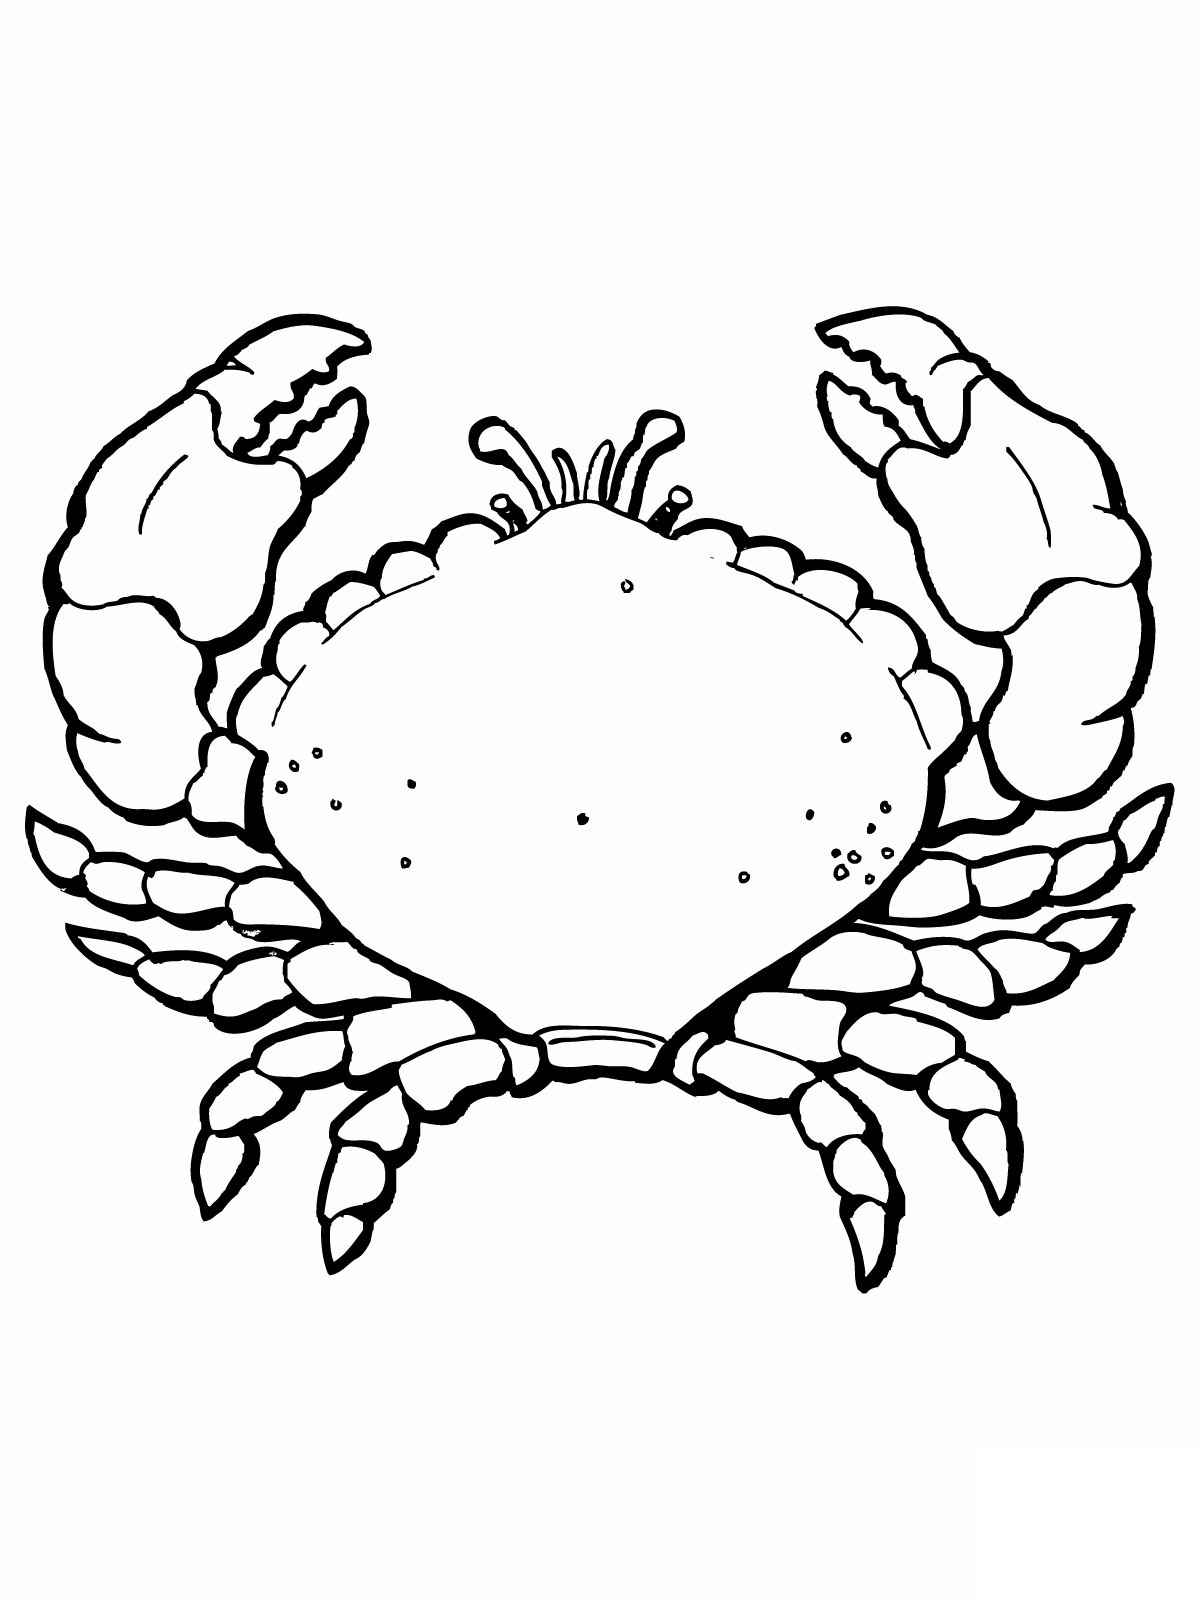 Sebastian The Crab Coloring Pages At Getcolorings